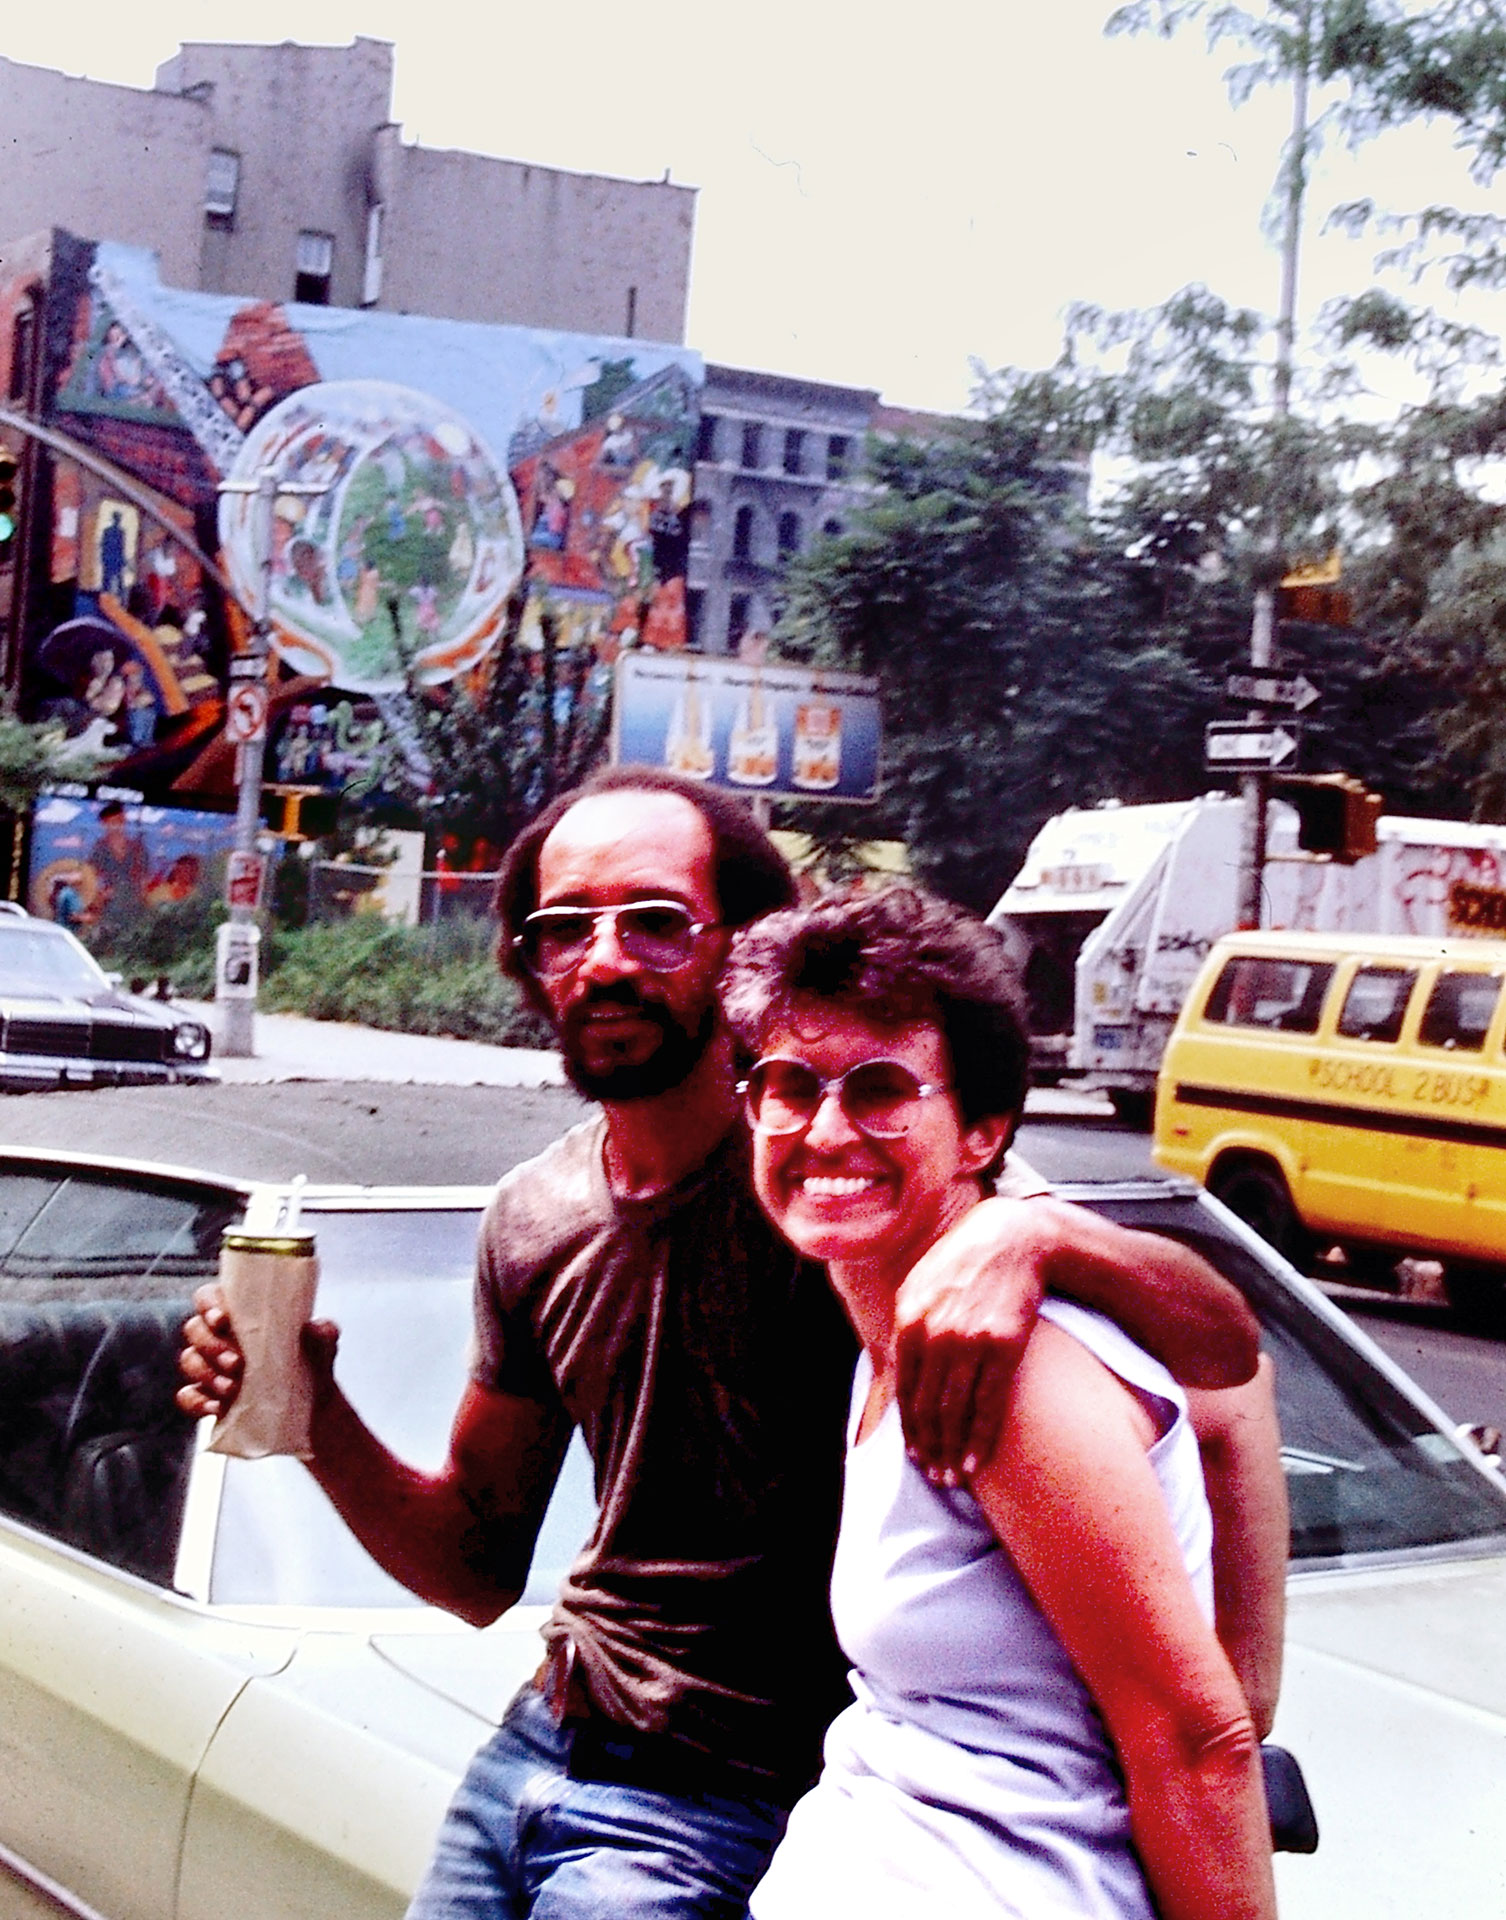 Joe Stephenson and Eva Cockcroft relaxing on NE corner of Avenue C and East 9th Street   Photo © Camille Perrottet